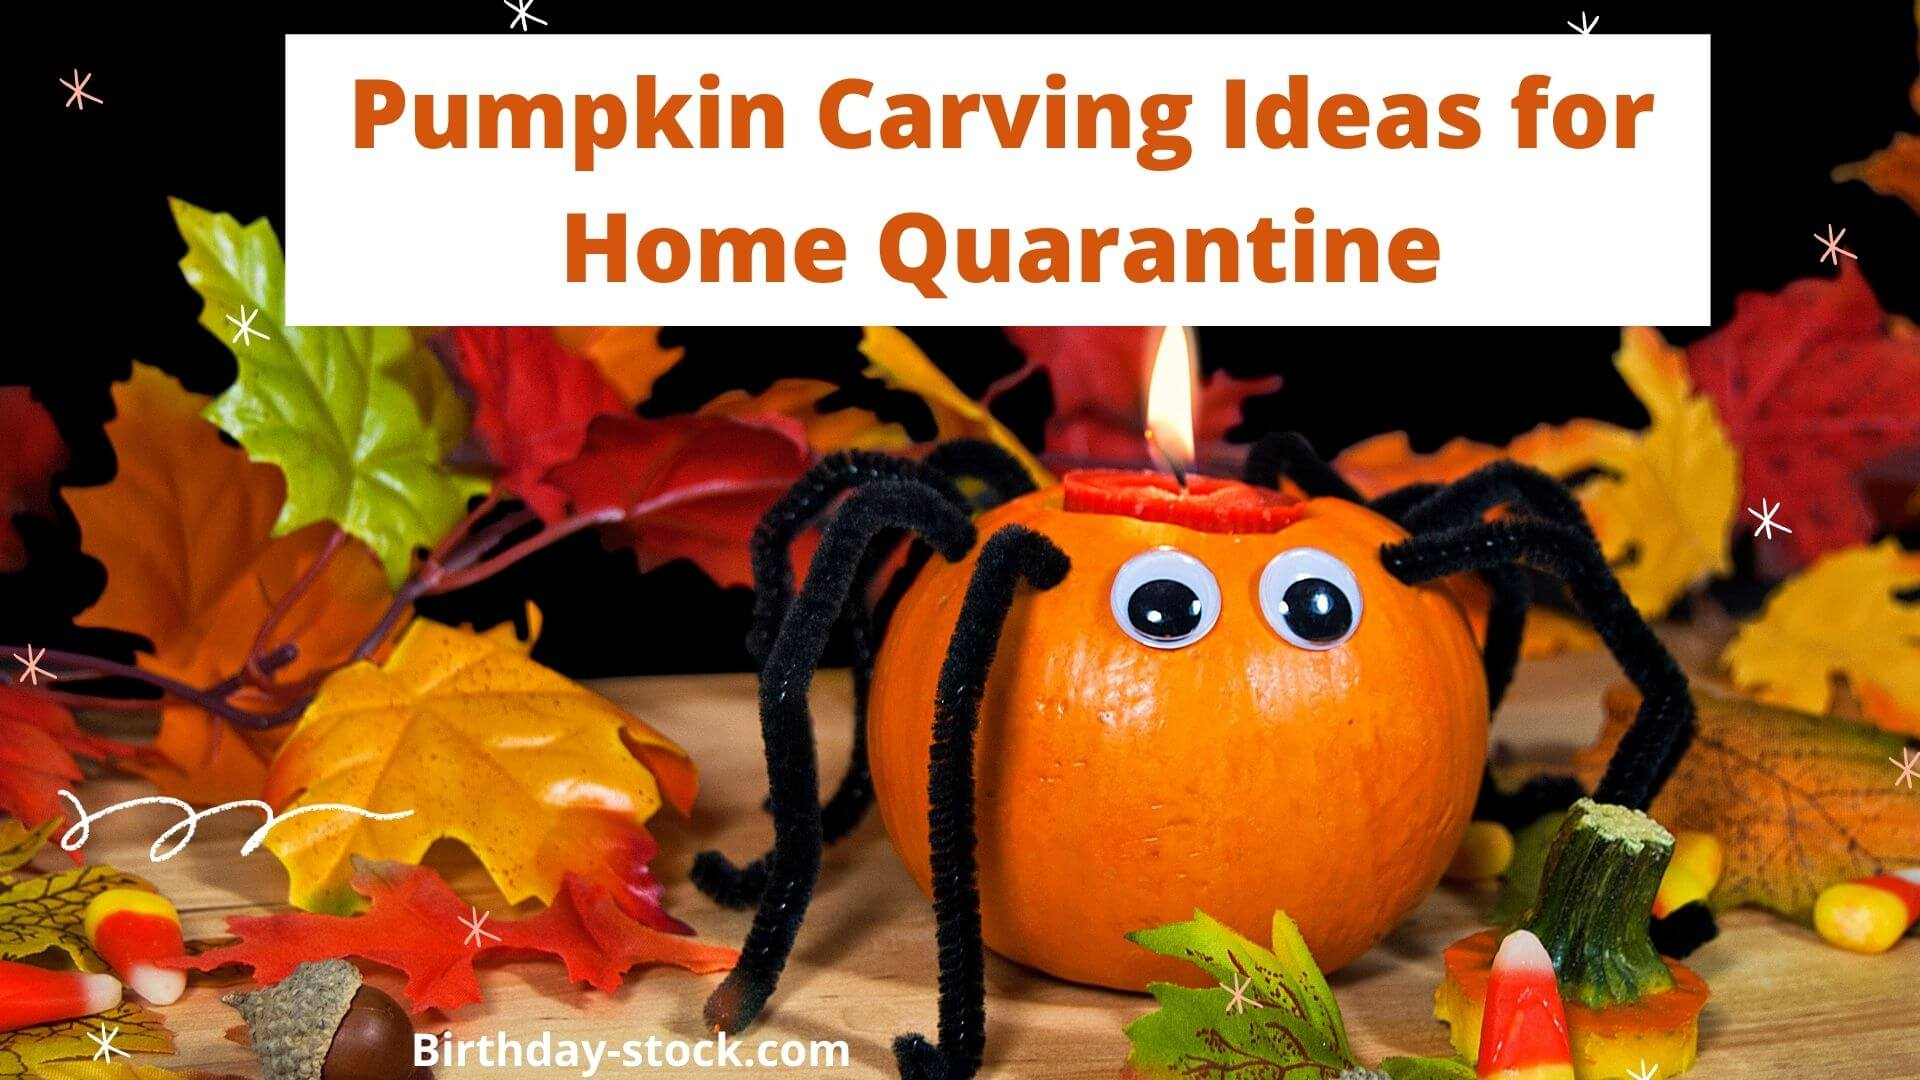 Pumpkin Carving Ideas 2020 for Home Quarantine